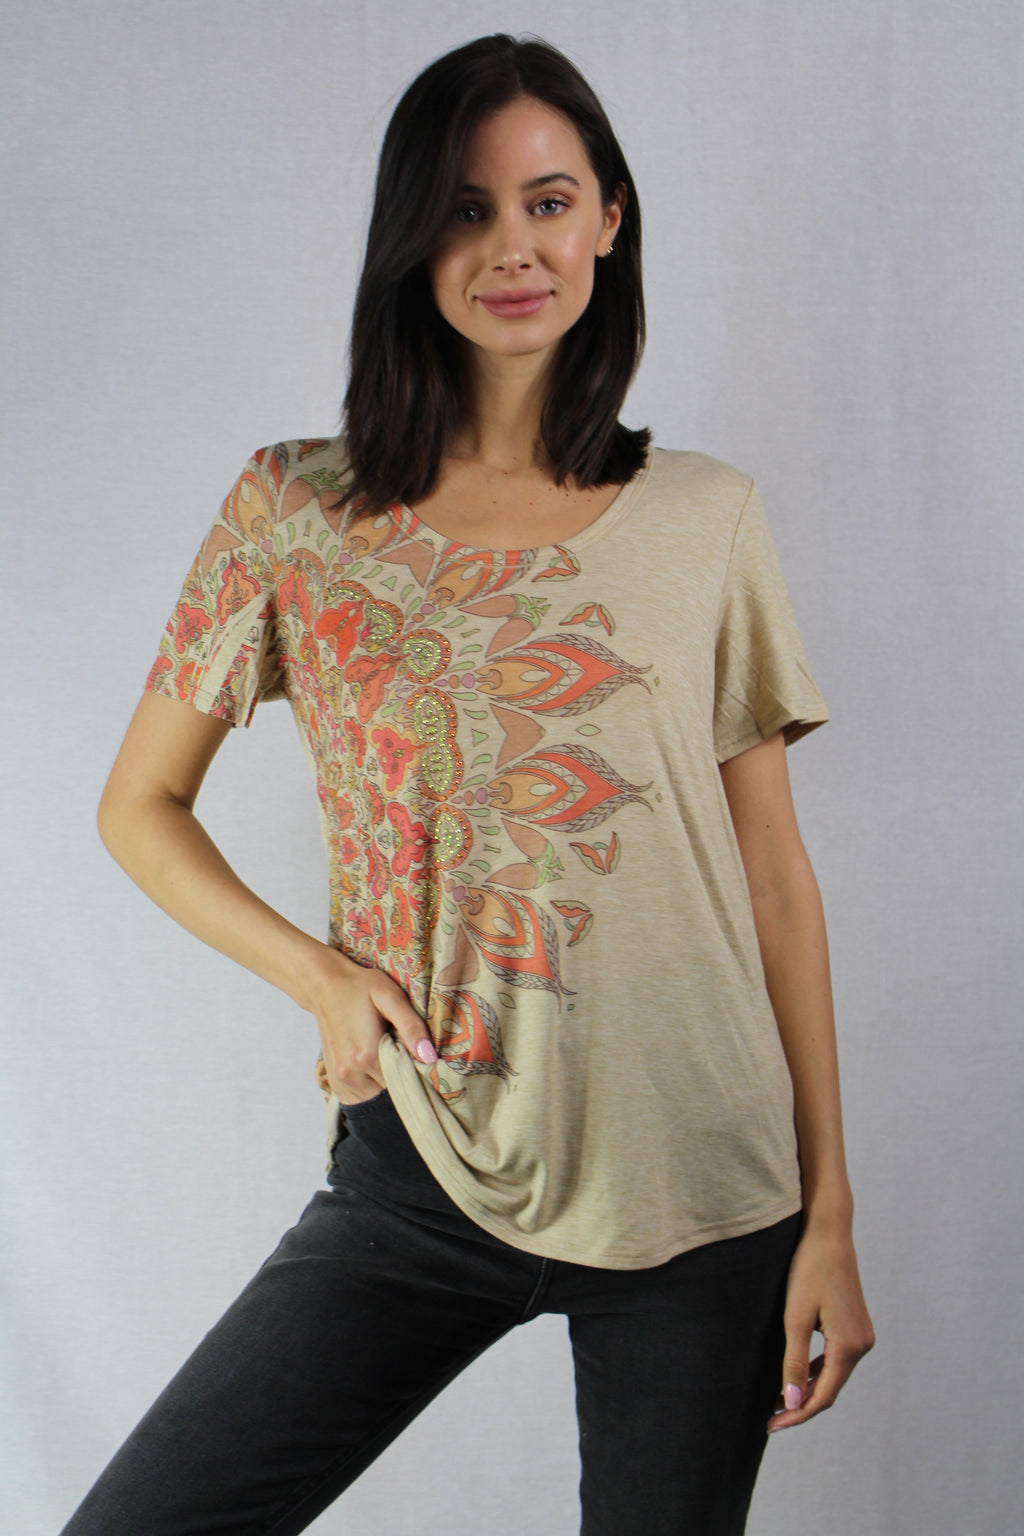 short sleeve printed top with a scoop neck